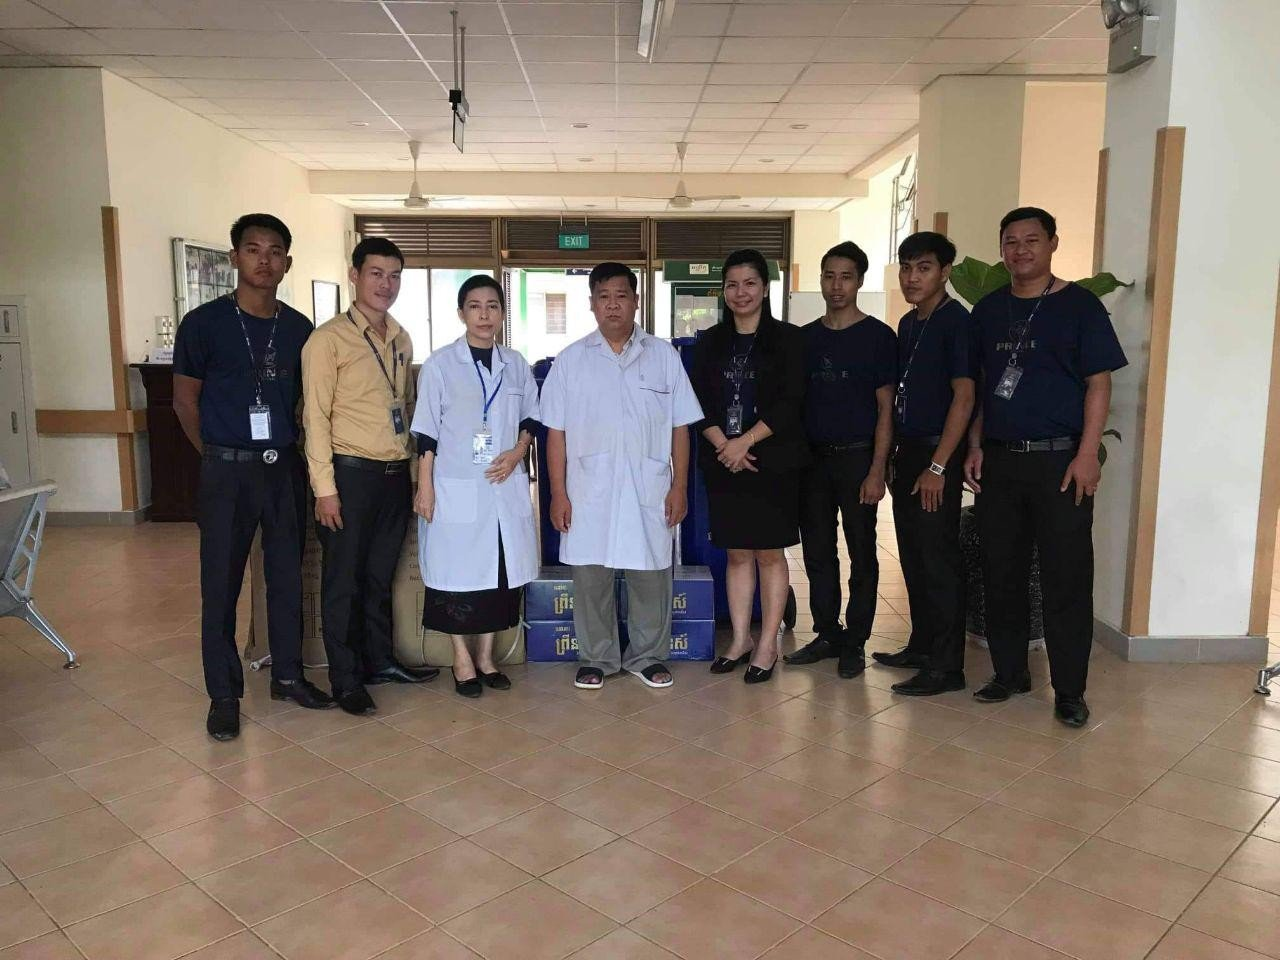 Prince Bank has donated materials to Sihanoukville Referal Hospital